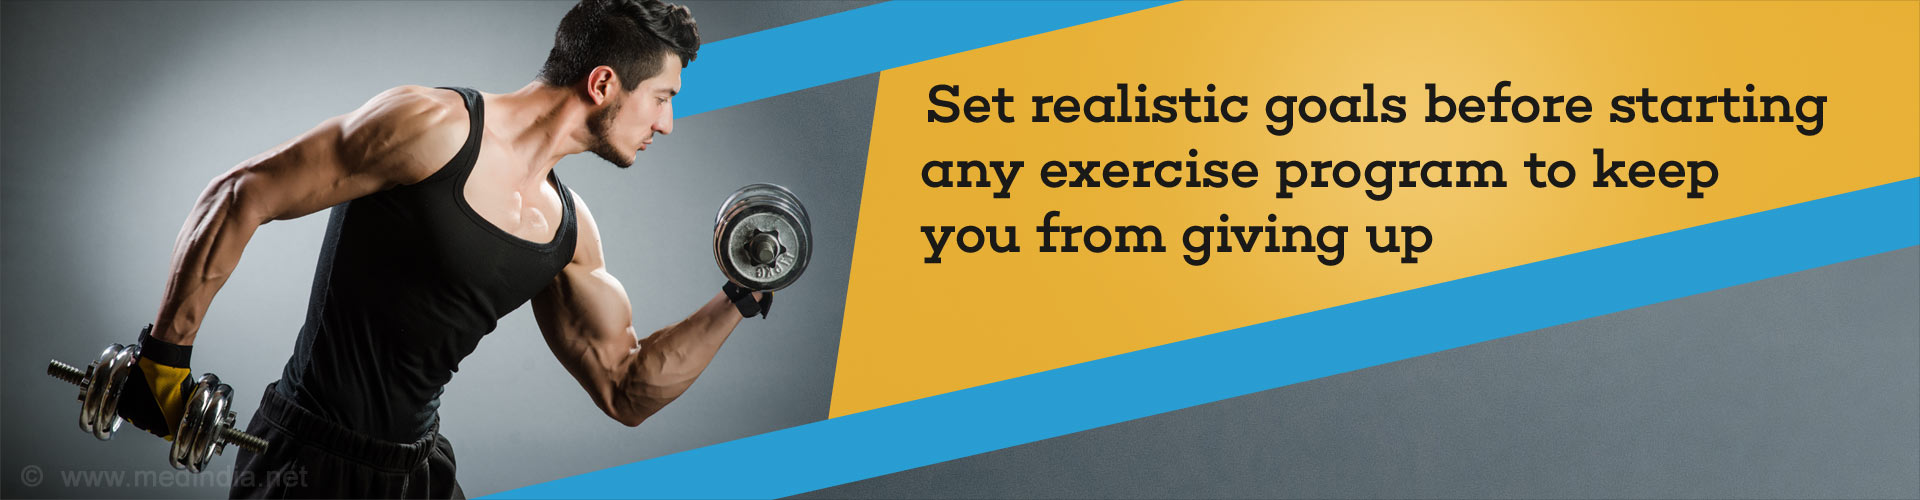 Set realistic goals before starting any exercise program to keep you from giving up